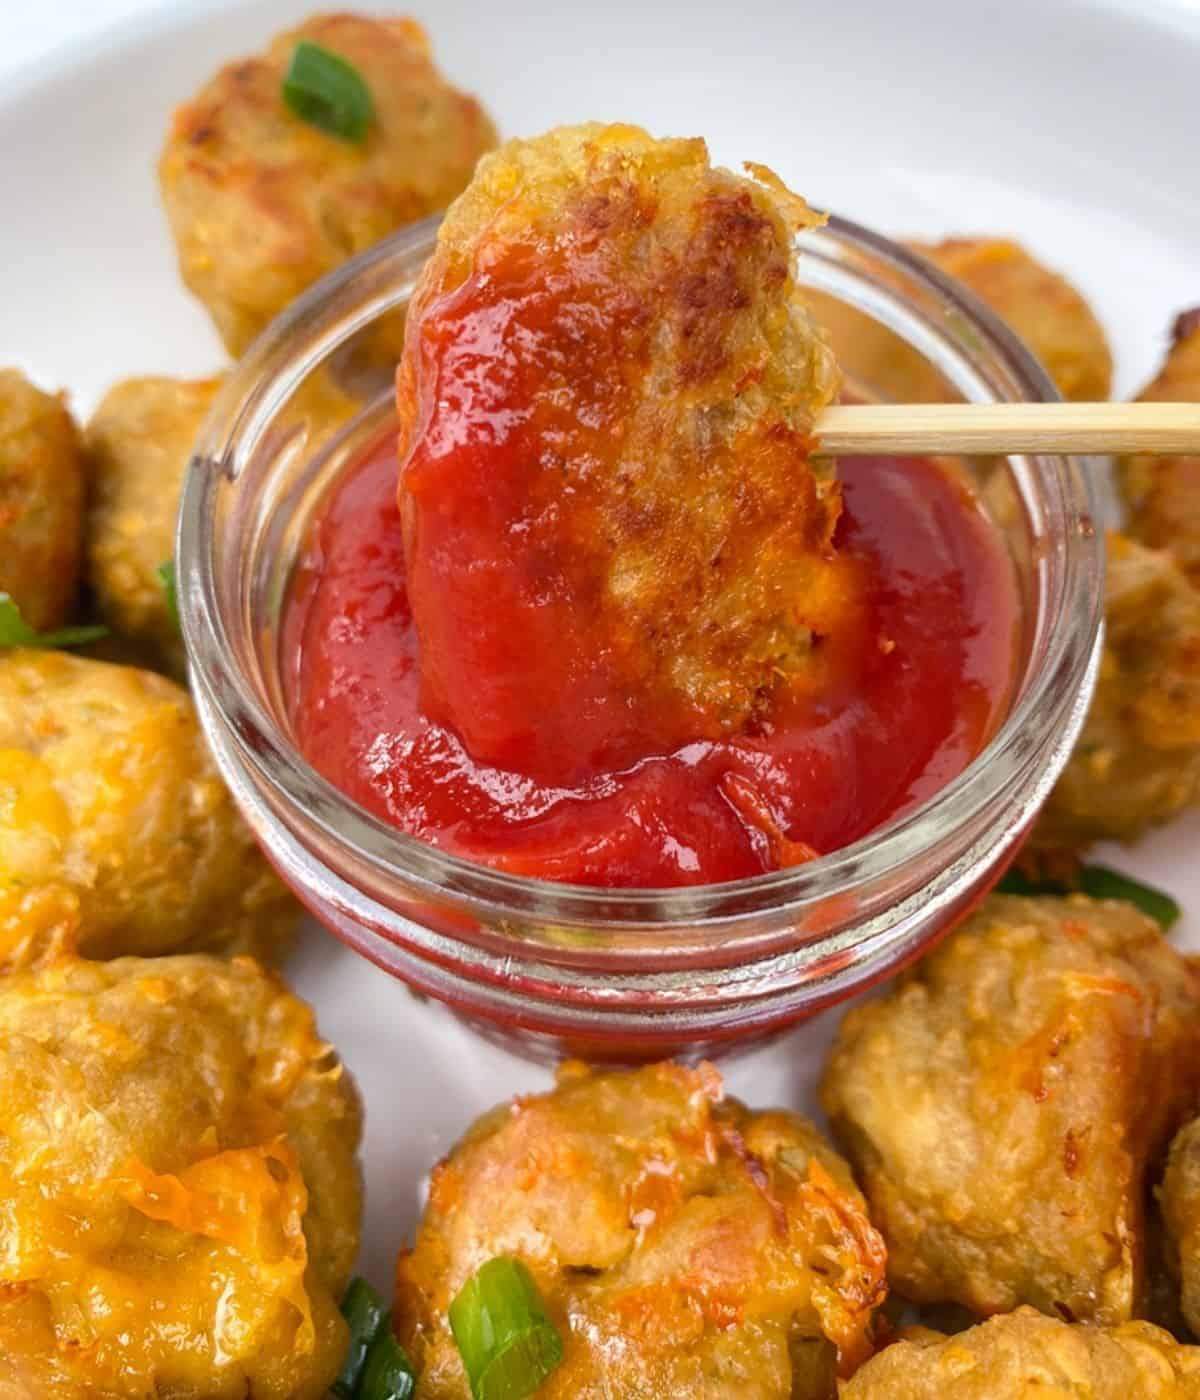 Sausage ball with ketchup on skewer.